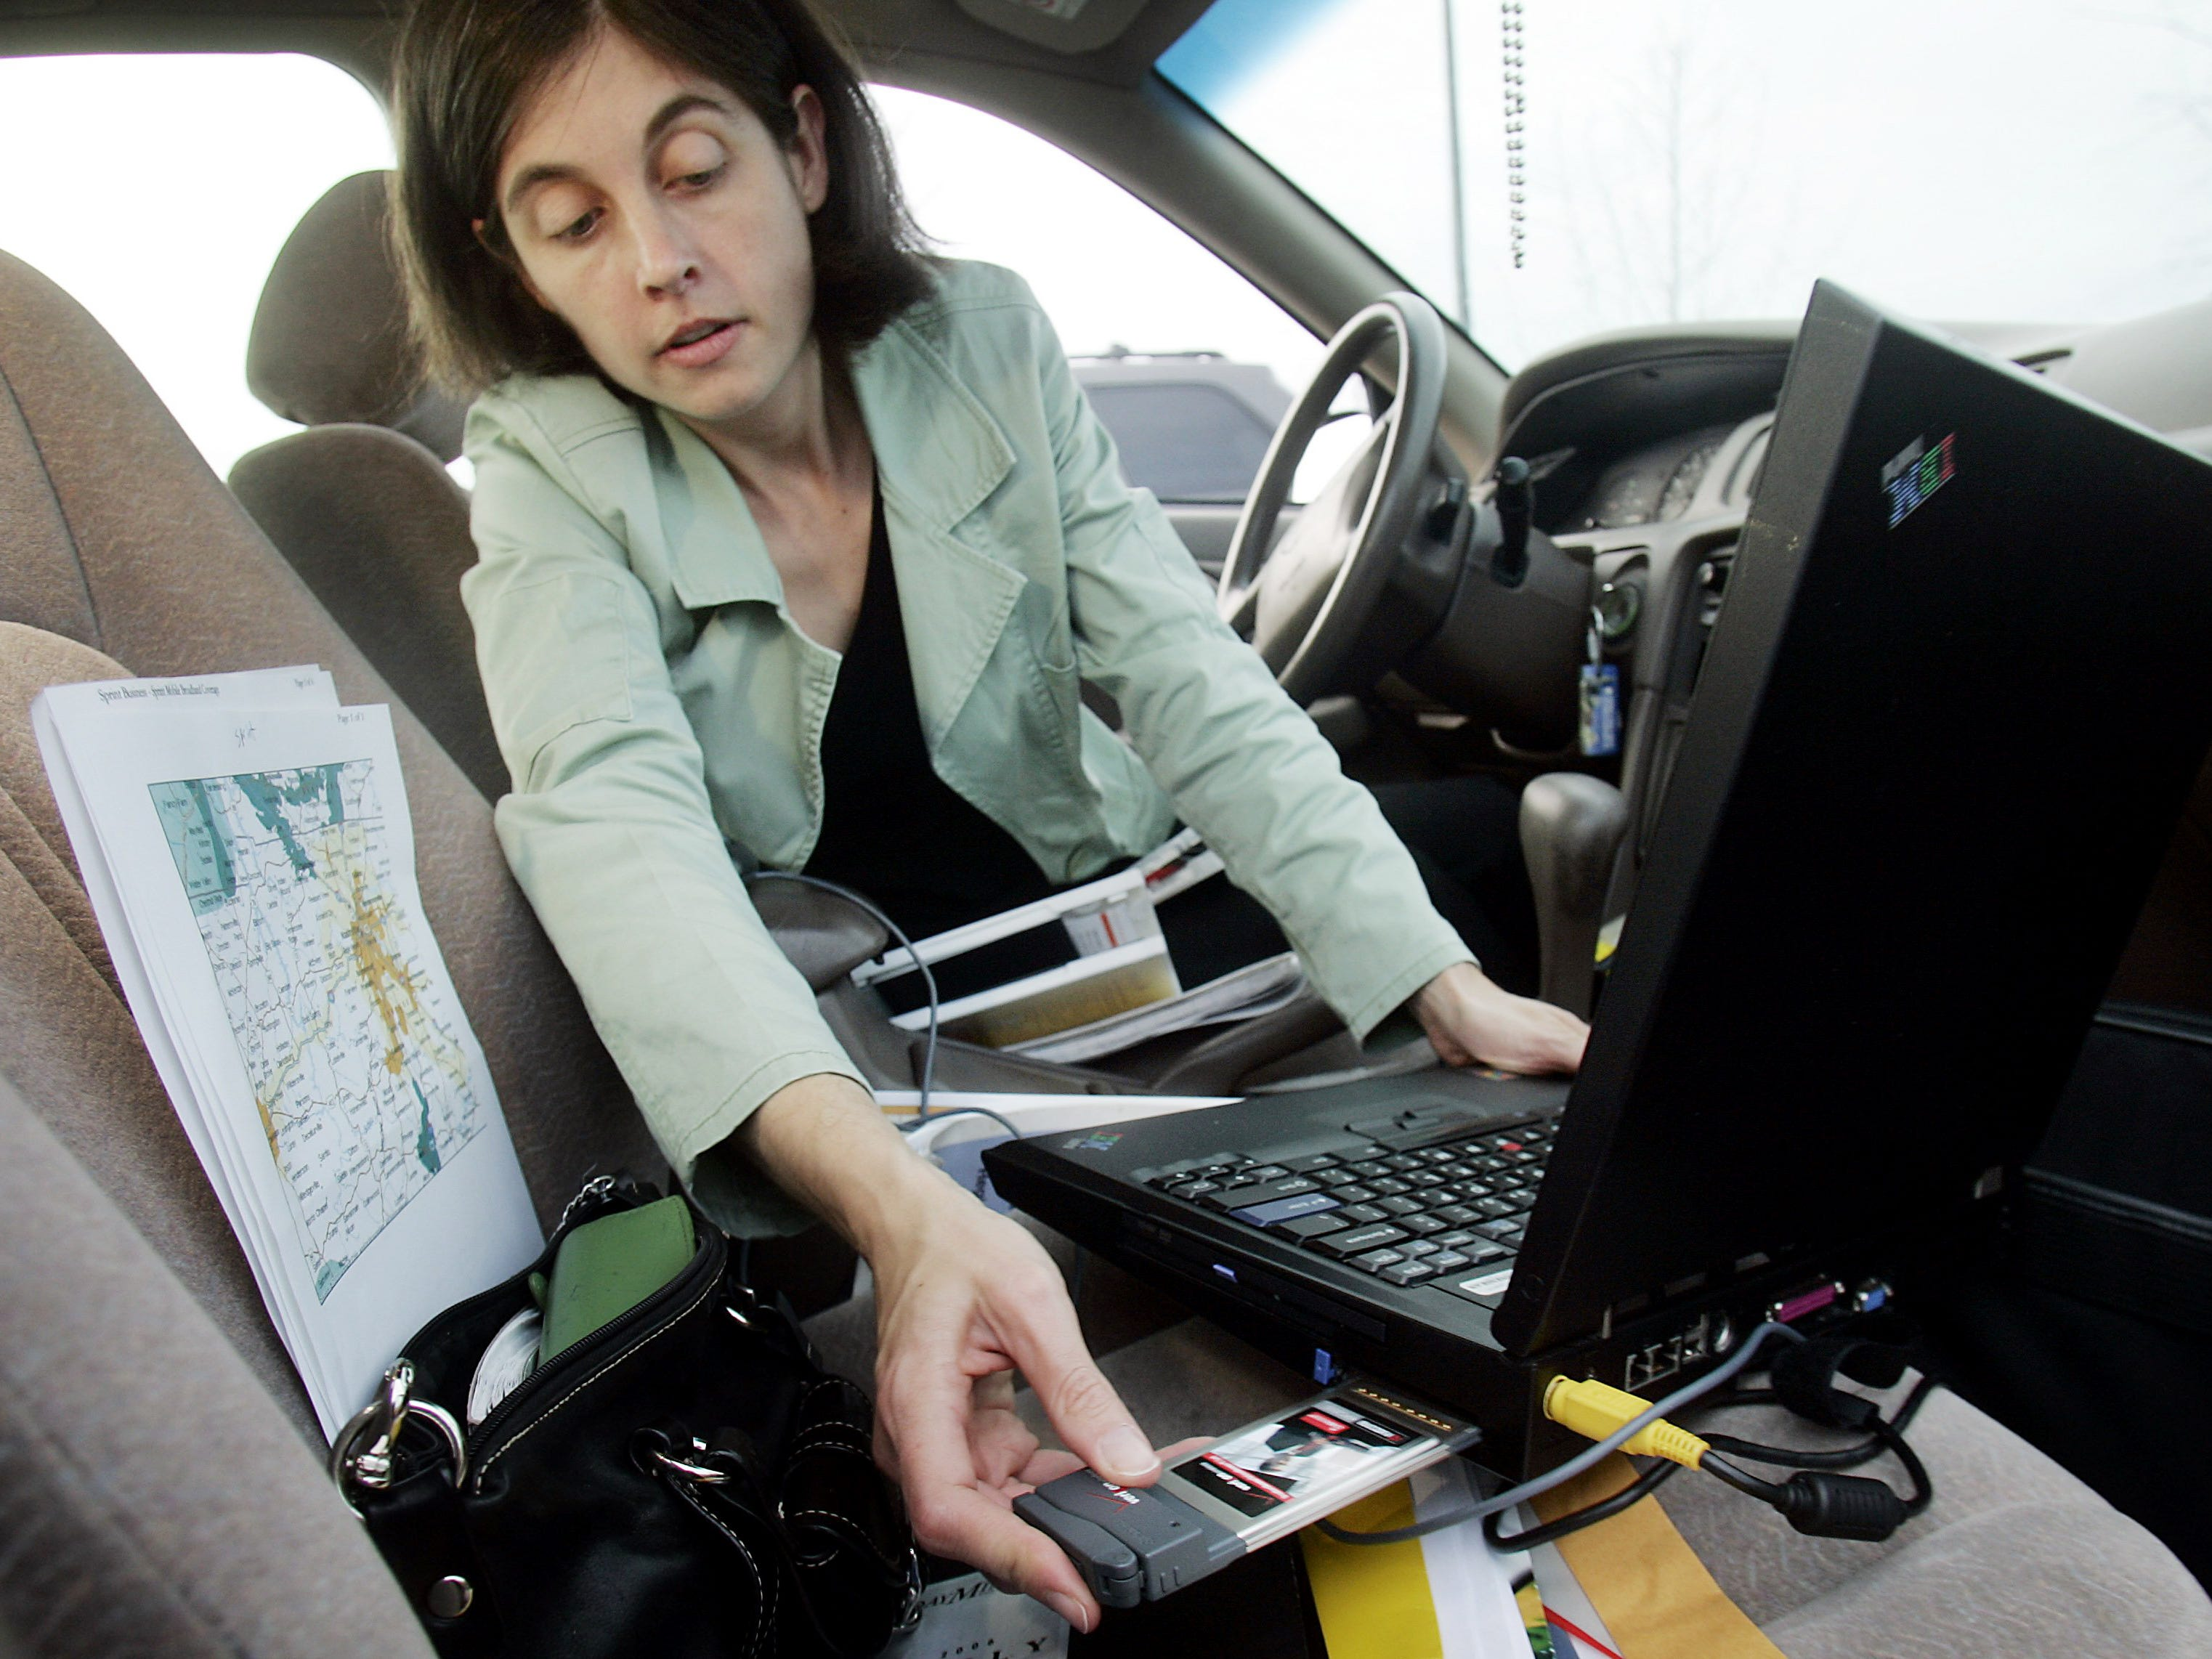 Tennessean reporter Naomi Snyder tests various broadband cards at several locations in and around Nashville for a story Nov. 30, 2006.